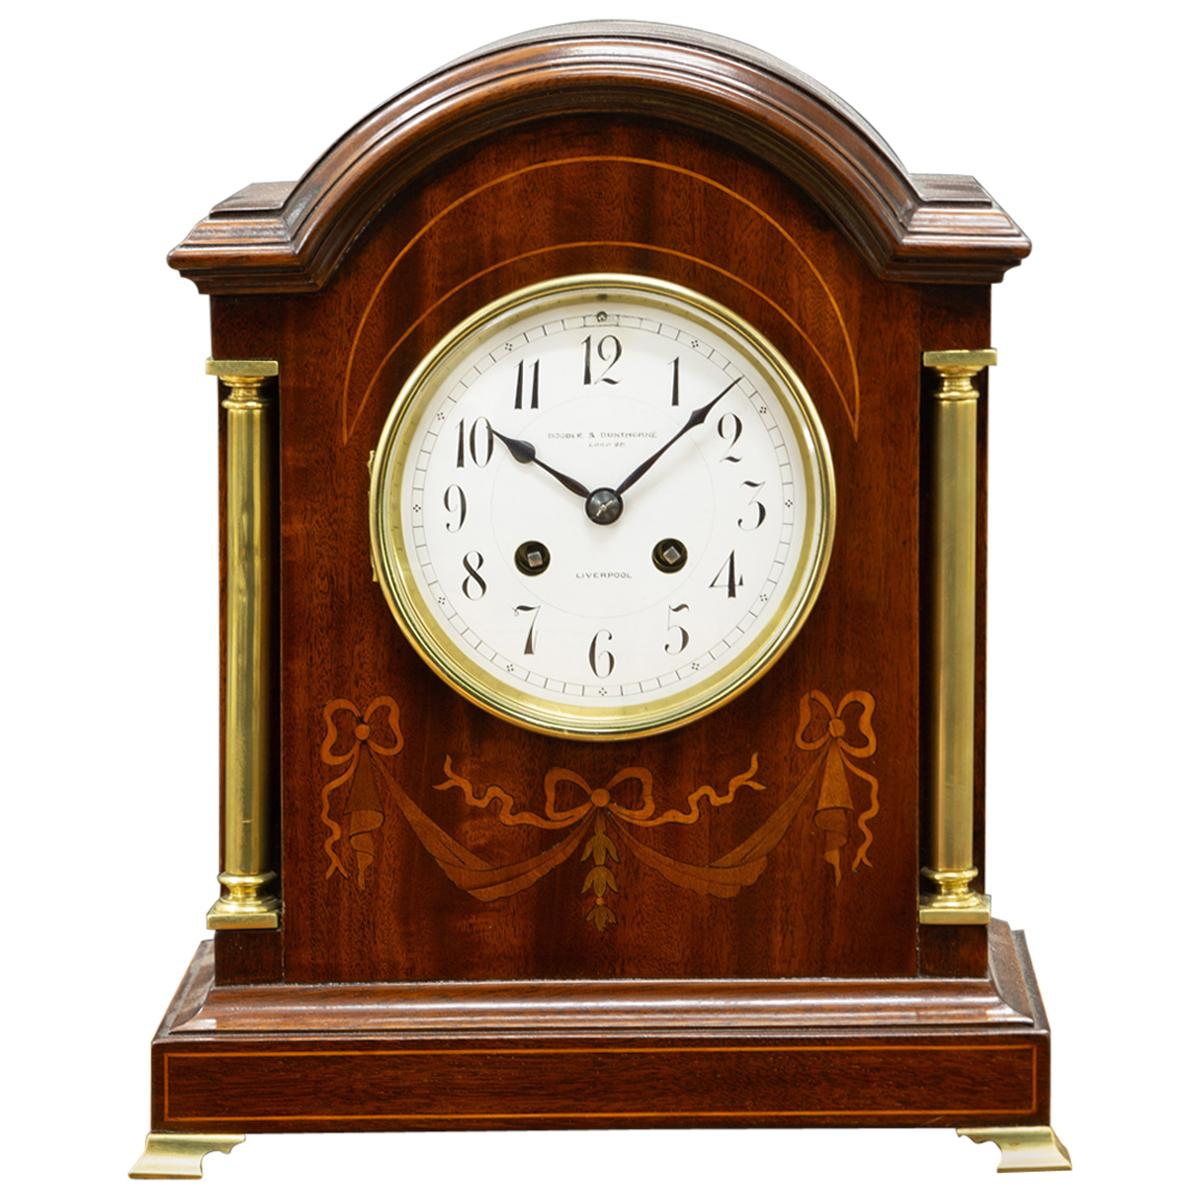 Edwardian Inlaid Mahogany Mantel Clock Signed Boodle and Dunthorne, Liverpool